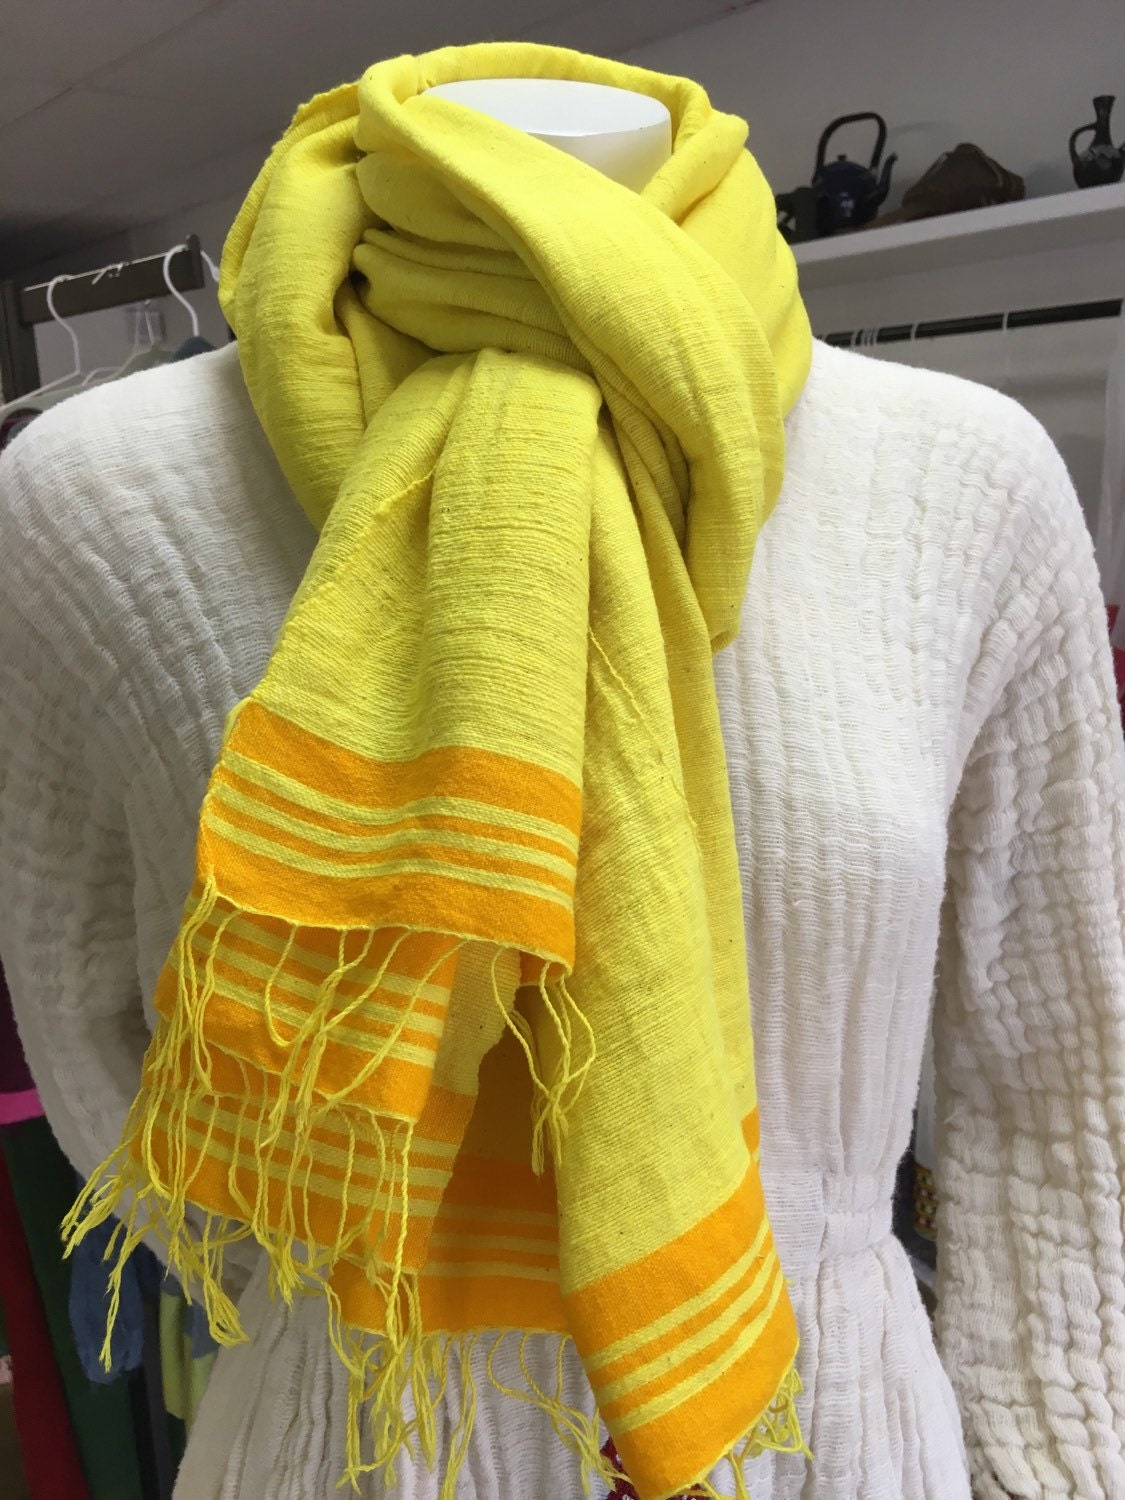 Ethiopia Scarves Images - Reverse Search